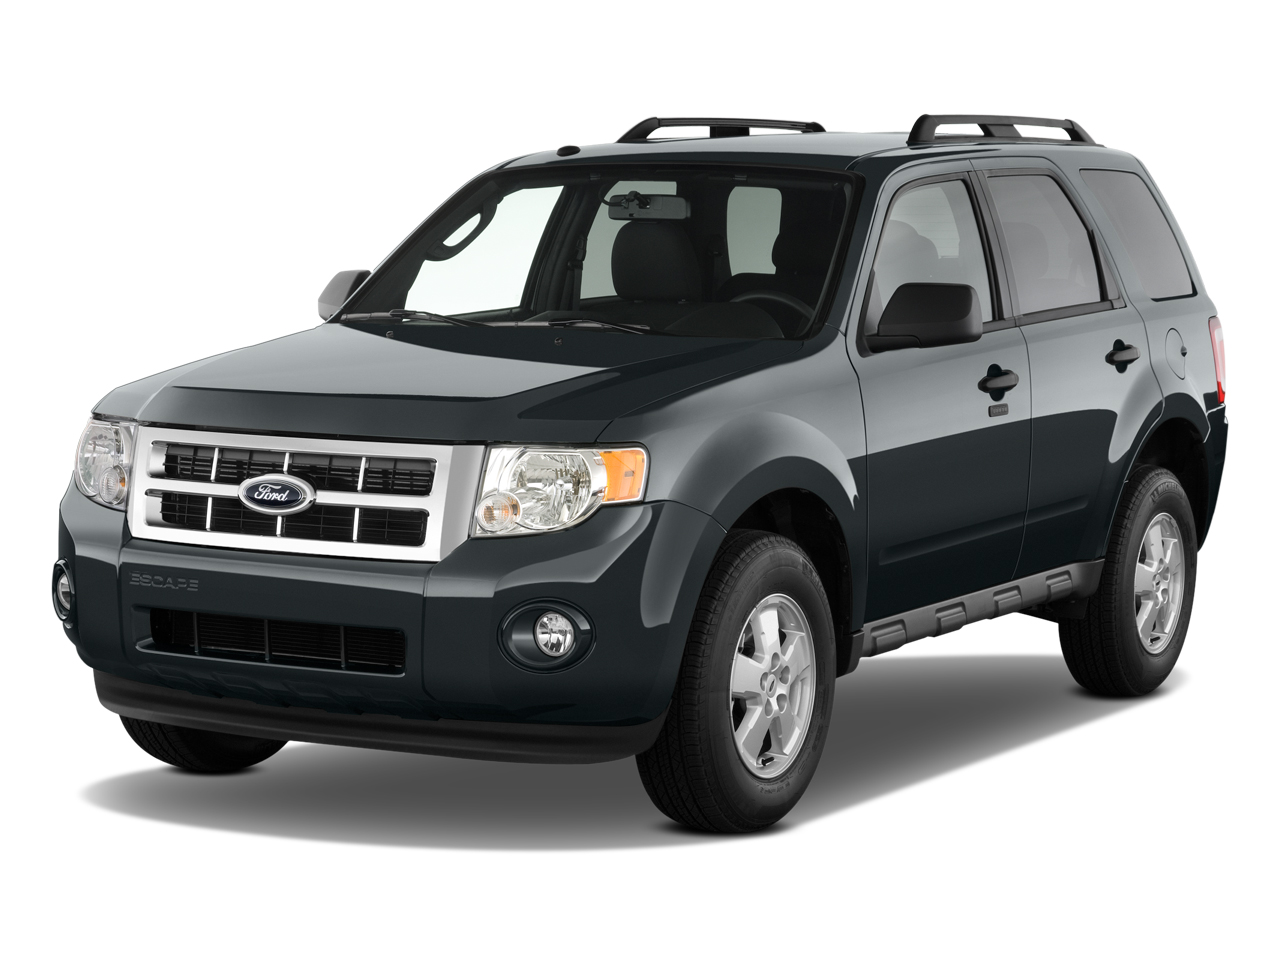 2011 ford escape gas mileage the car connection. Black Bedroom Furniture Sets. Home Design Ideas